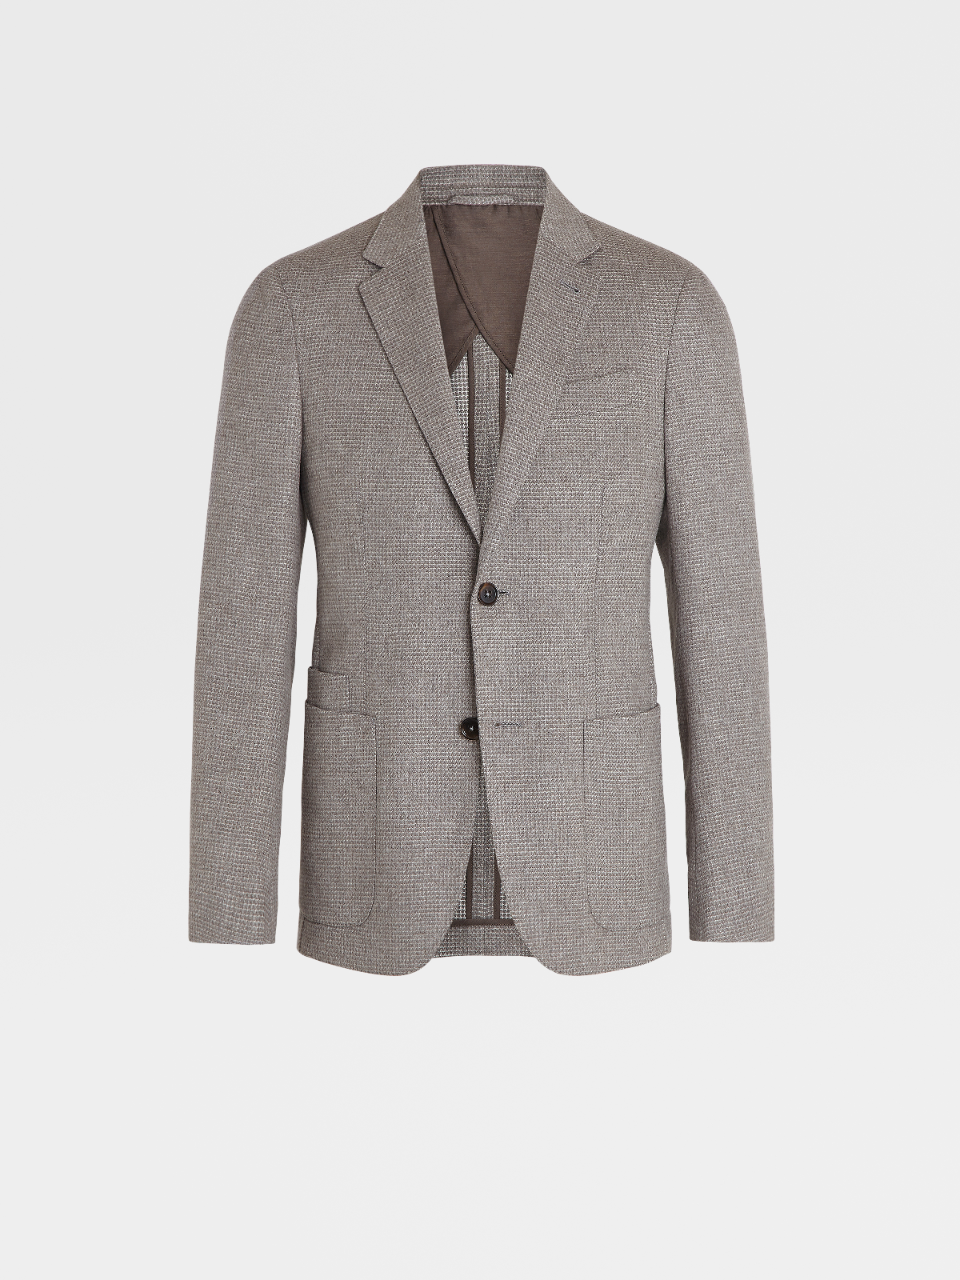 Wool Silk and Cashmere Textured Jacket